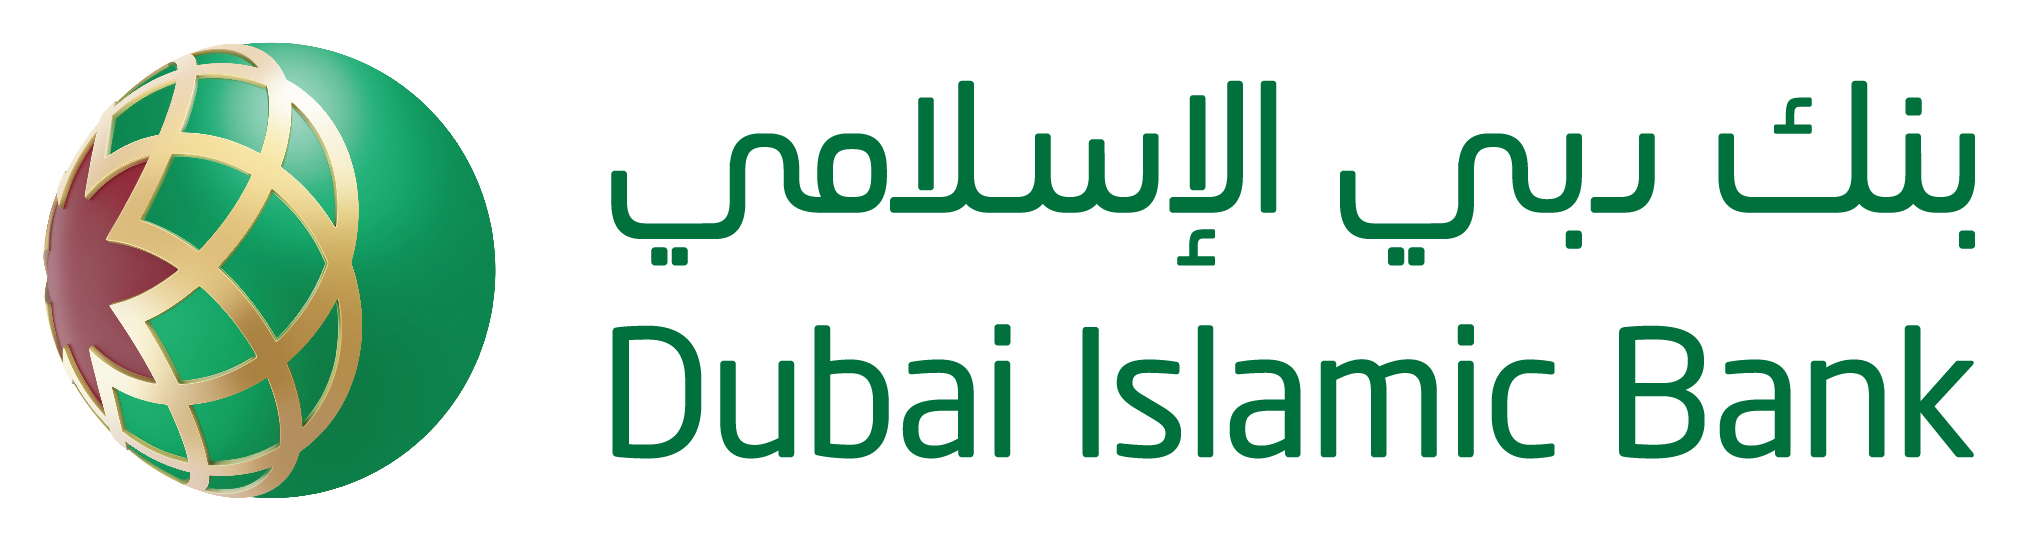 Dubai Islamic Bank - Al Islami Investment Deposit Account 1-month